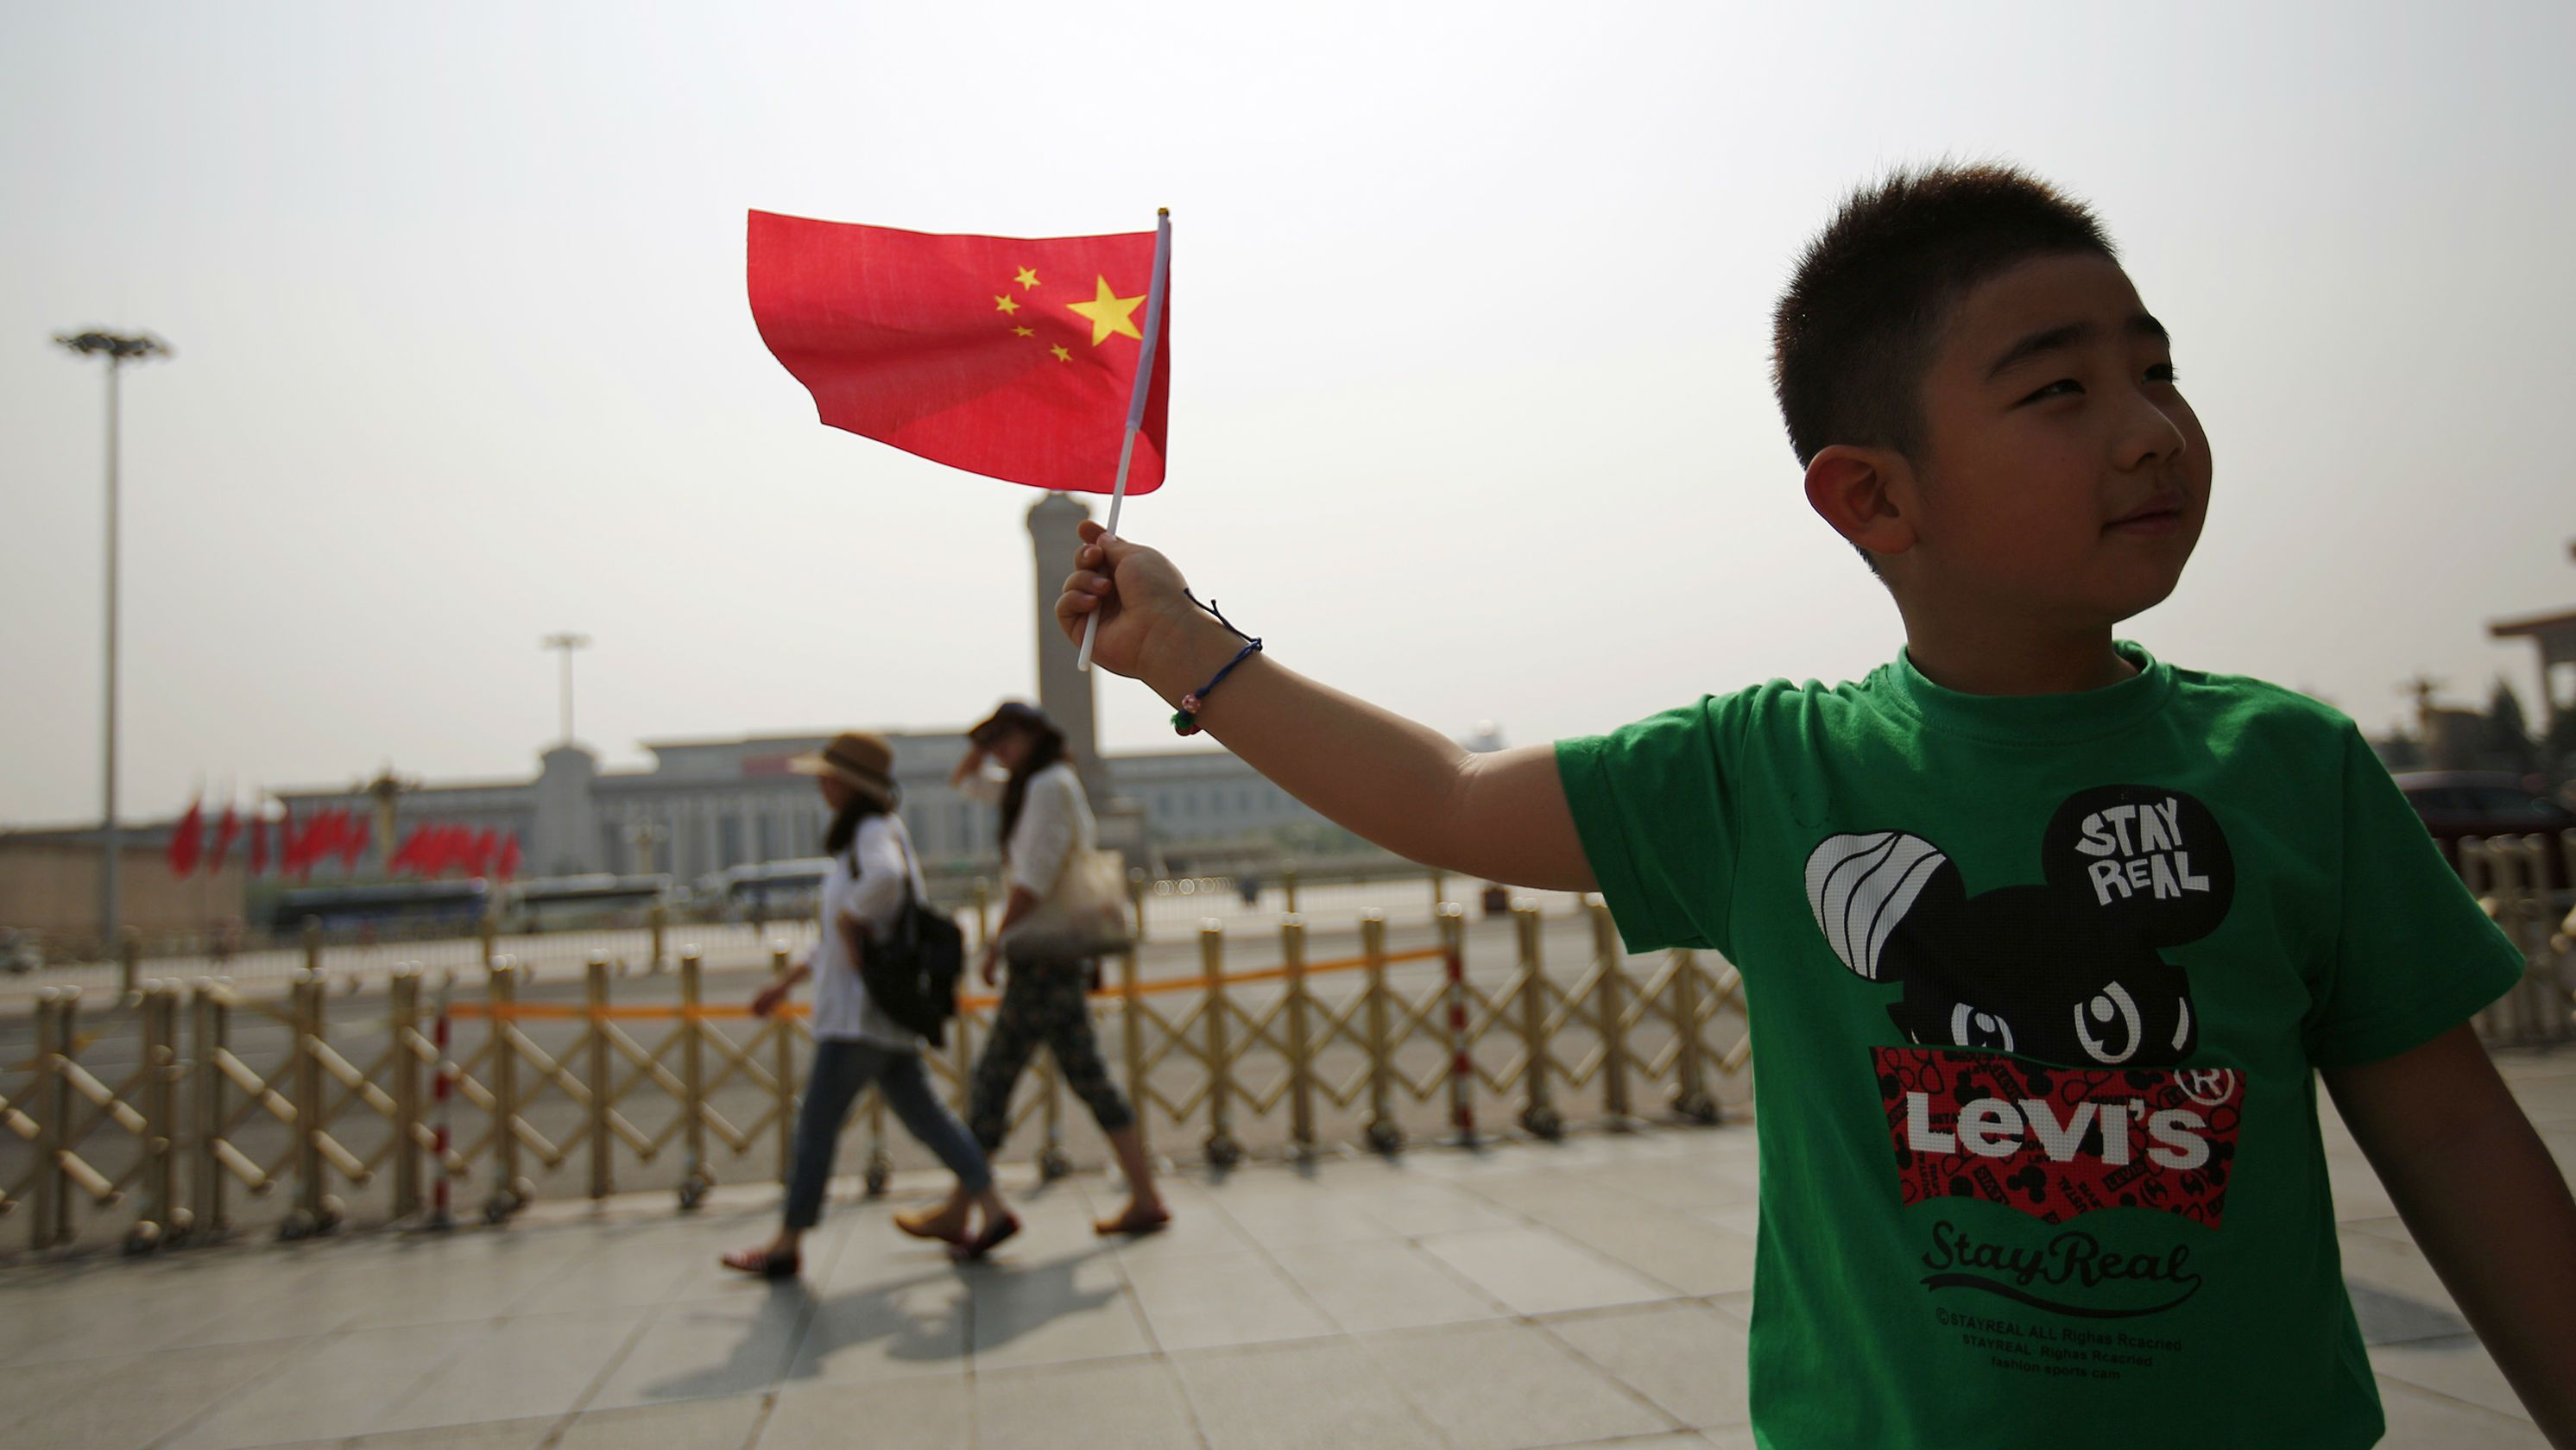 A boy poses with a Chinese national flag in front of Tiananmen Square in Beijing June 4, 2014. From keeping foreign reporters off Beijing's Tiananmen Square to widespread censorship of the Internet, China marked 25 years since the bloody suppression of pro-democracy protests on Wednesday under a cloak of security. REUTERS/Kim Kyung-Hoon (CHINA - Tags: POLITICS TRAVEL CIVIL UNREST ANNIVERSARY)